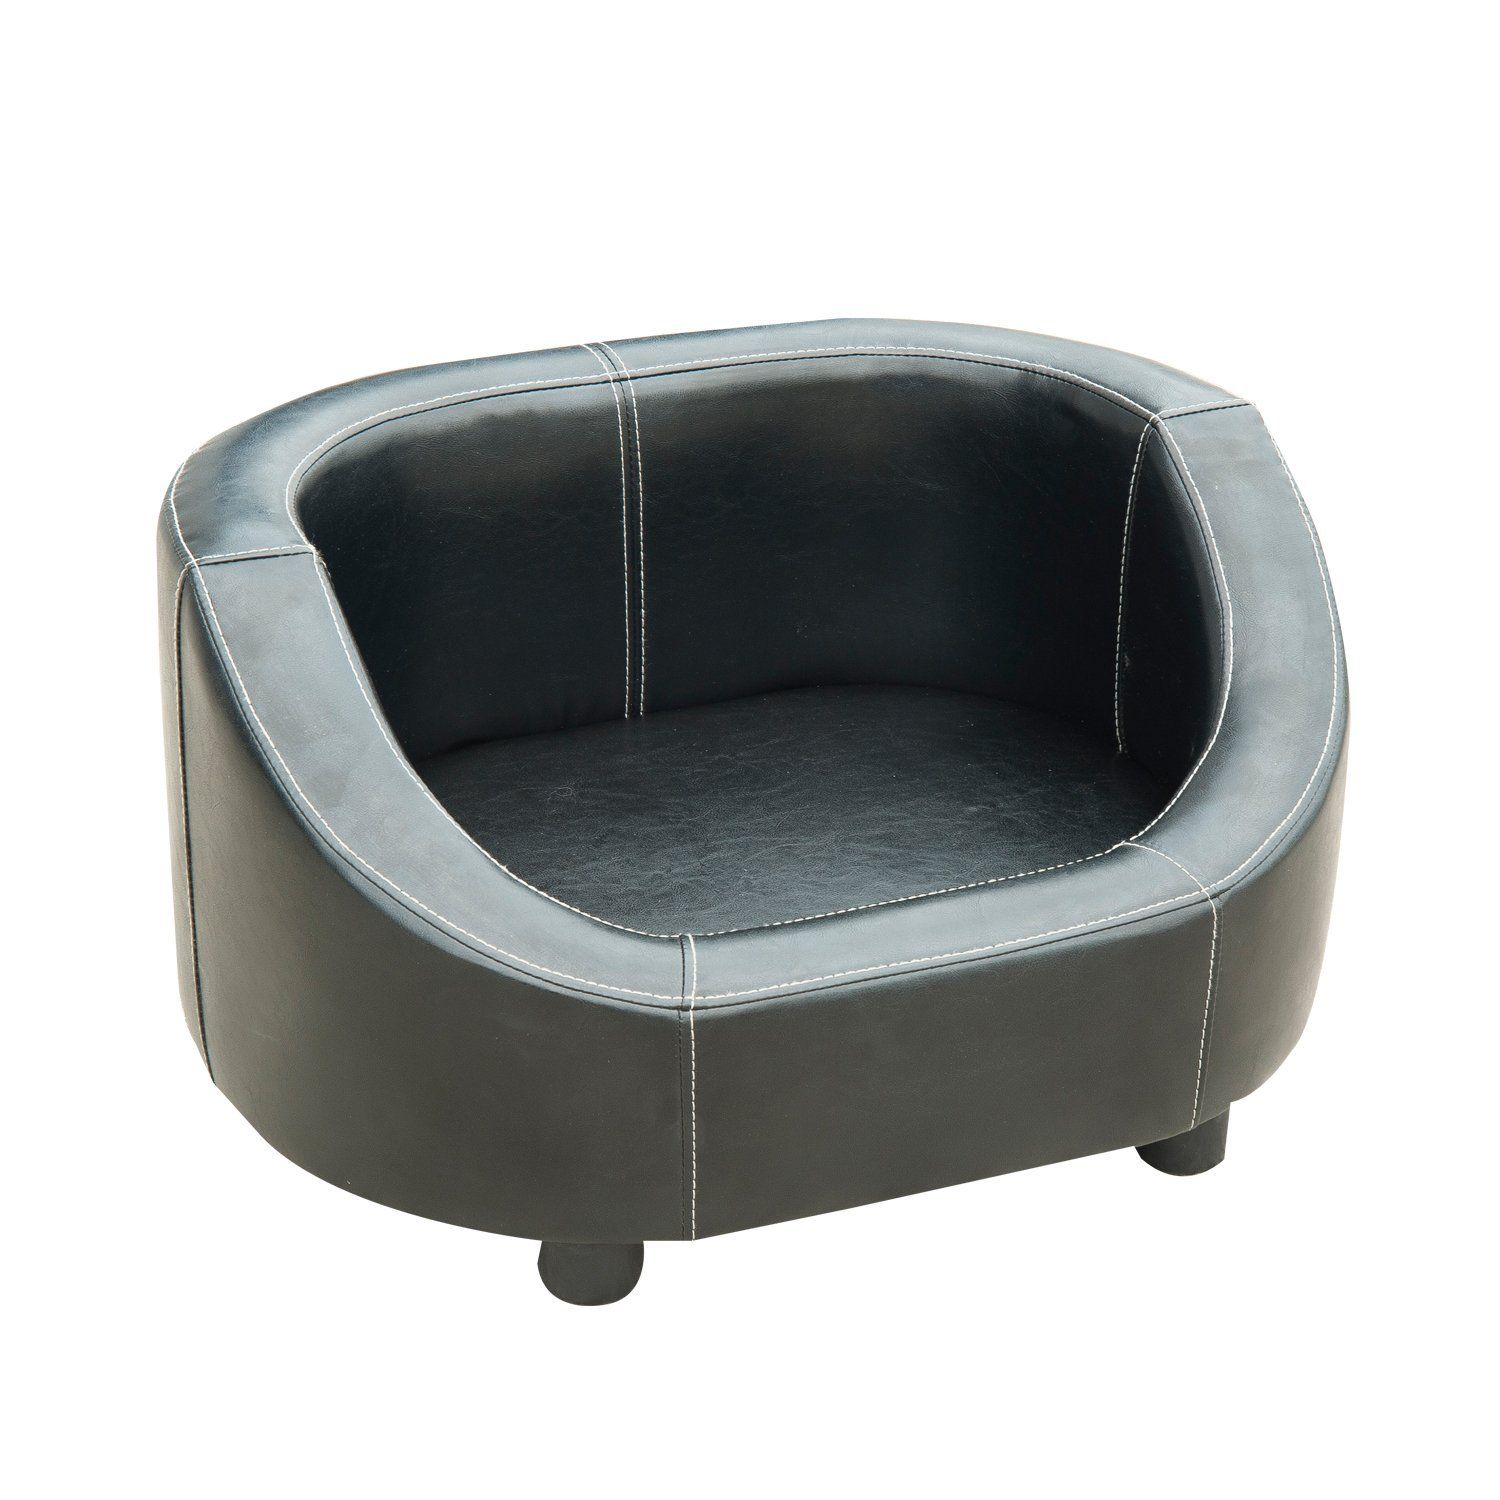 Pawhut Deluxe Pu Leather Pet Dog Sofa Bed Black To View Further For This Item Visit The Image Dog Sofa Bed Sofa Bed Black Dog Bed Furniture